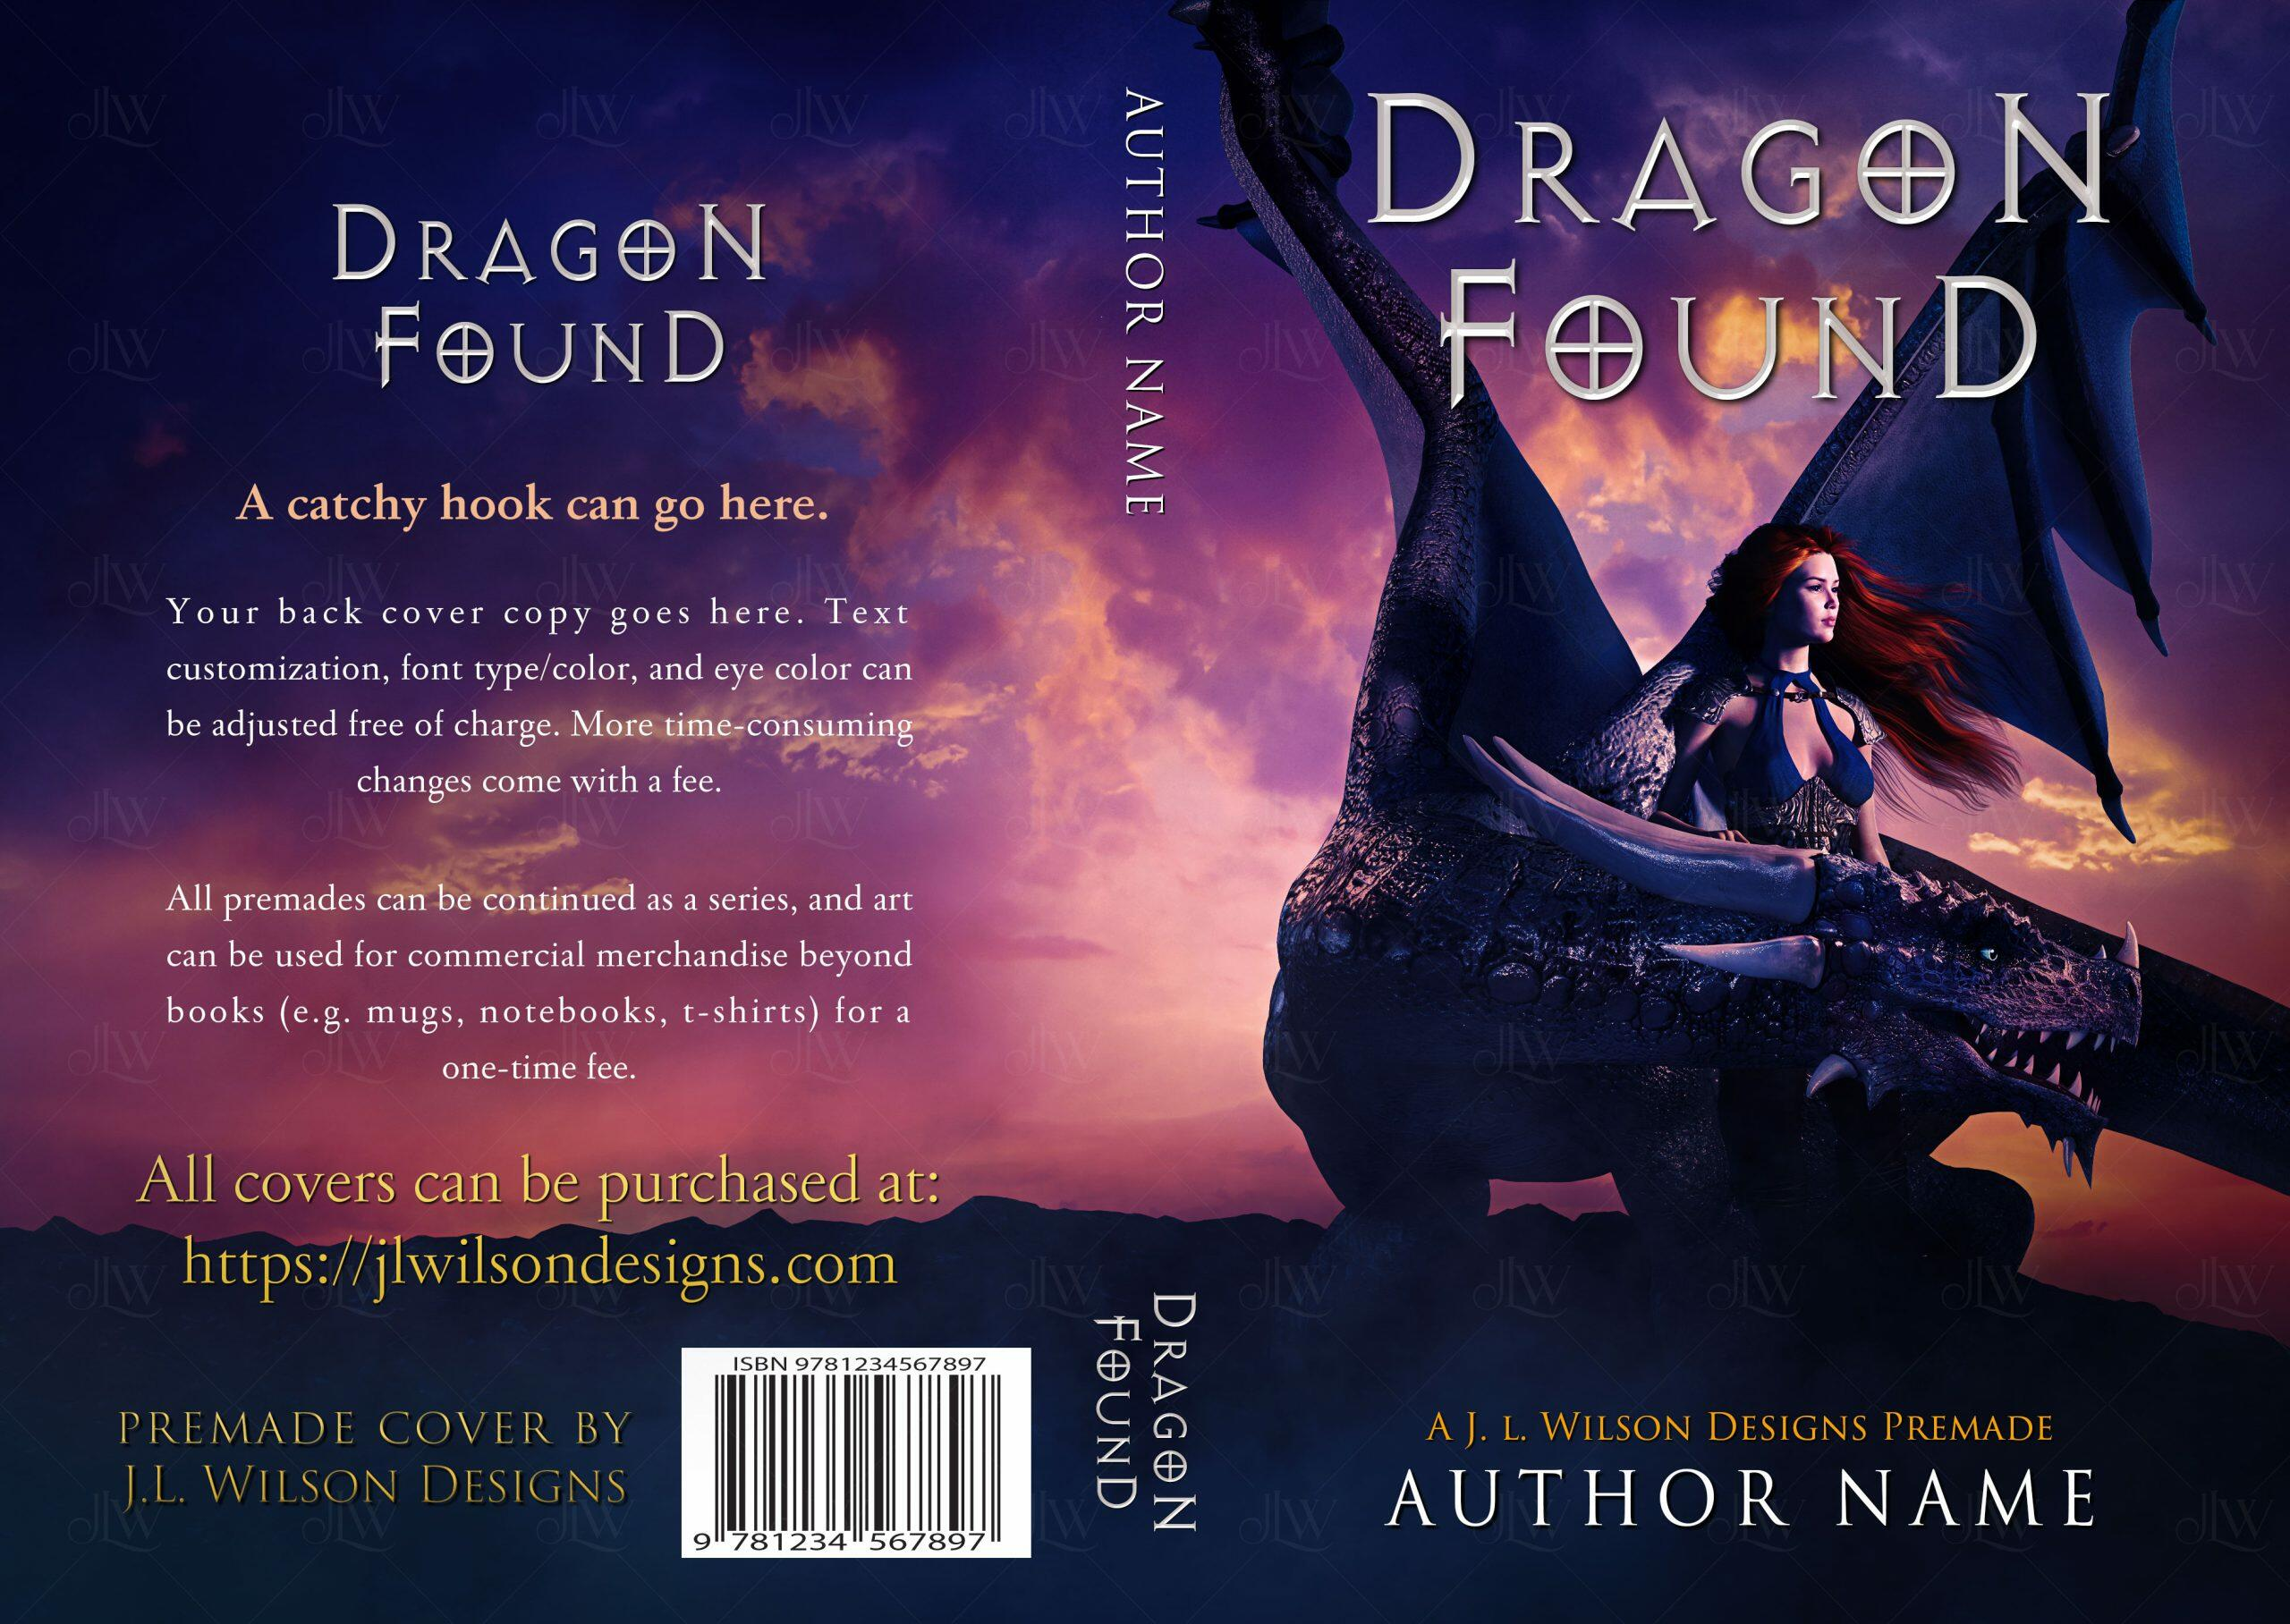 A fantasy book cover with a dragon protecting a beautiful woman on a cliff against a pink and purple sky